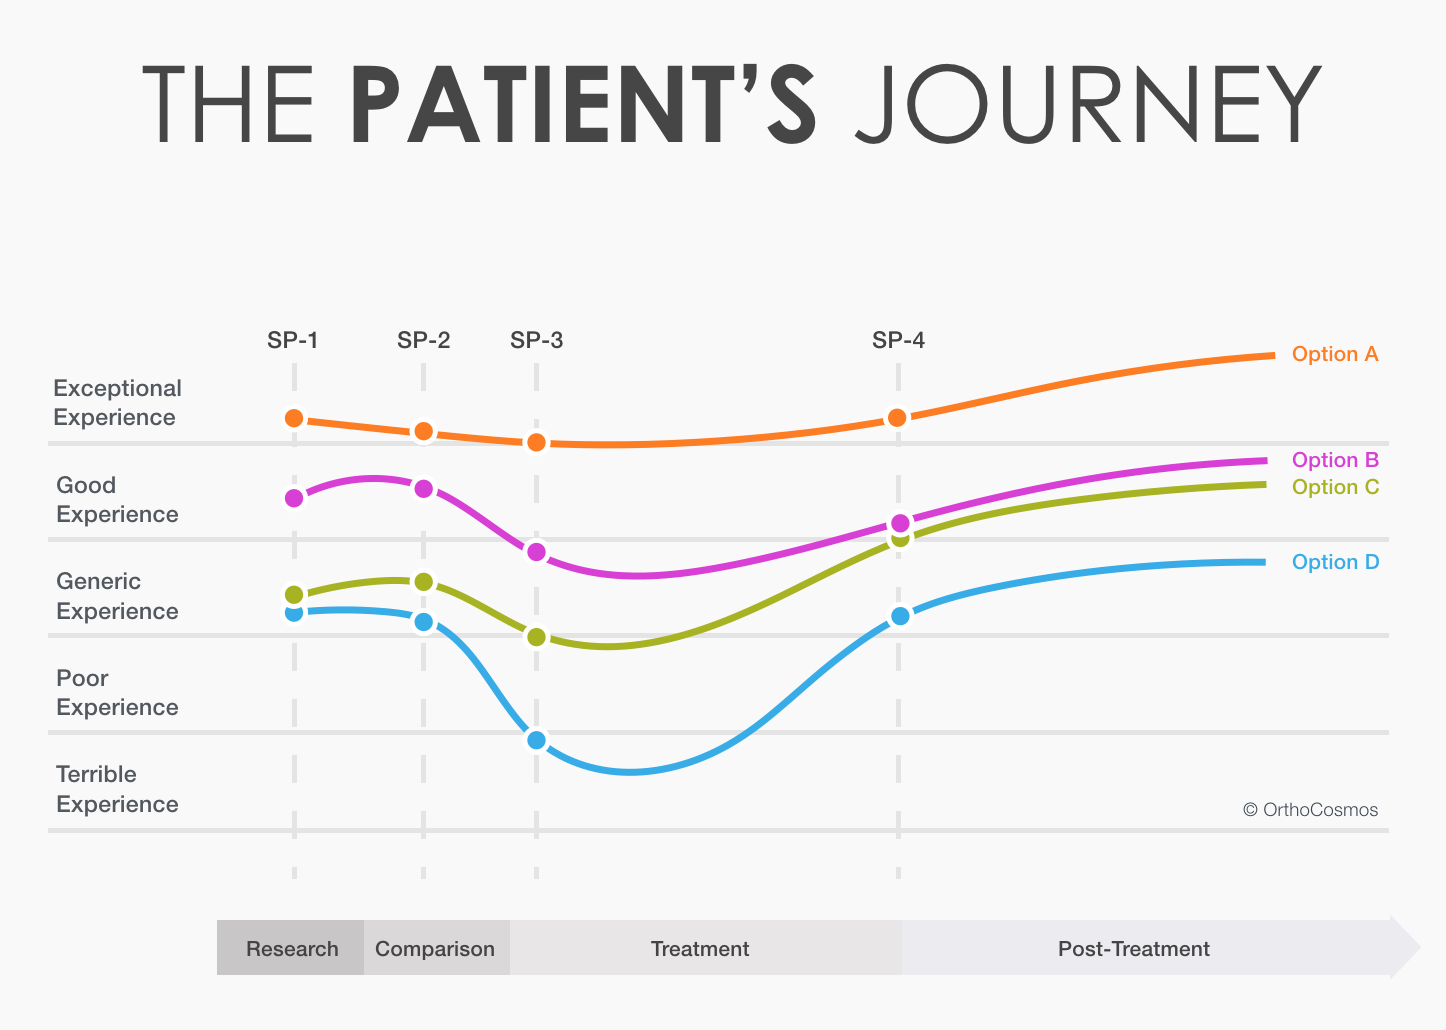 The Patient's Journey